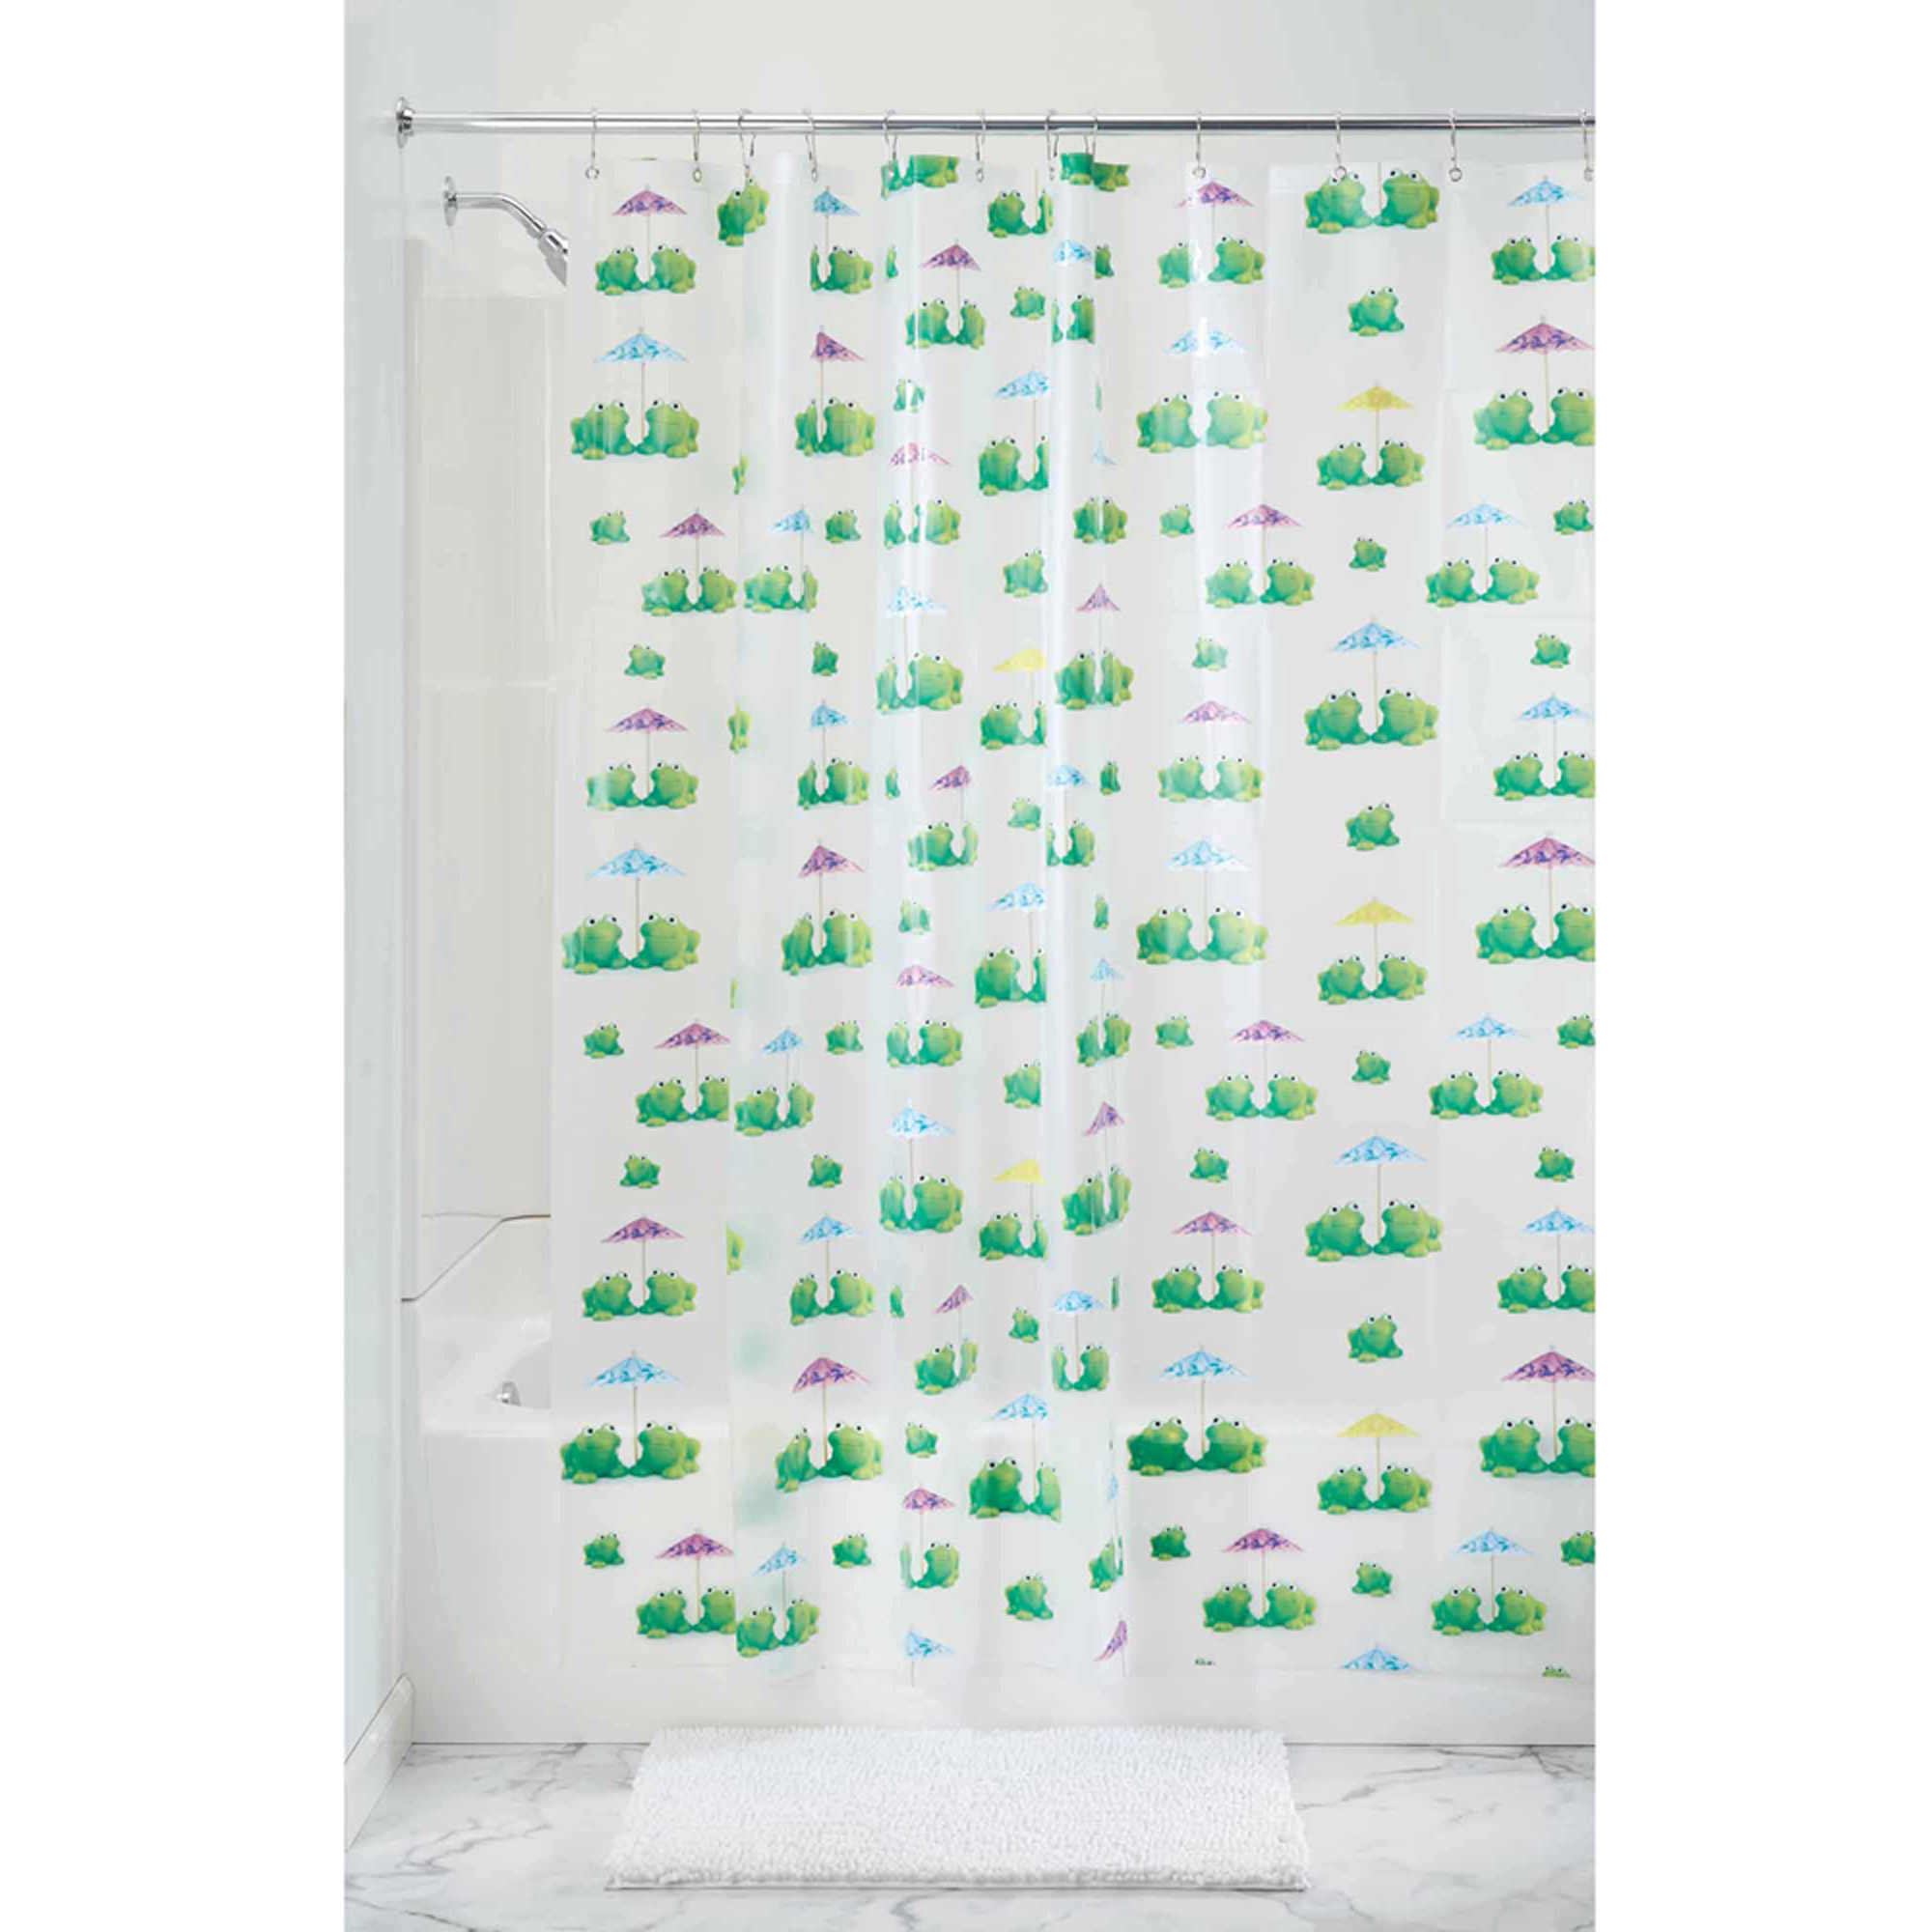 "InterDesign Frogs Shower Curtain- PVC Free ,72"" x 72"", Green"